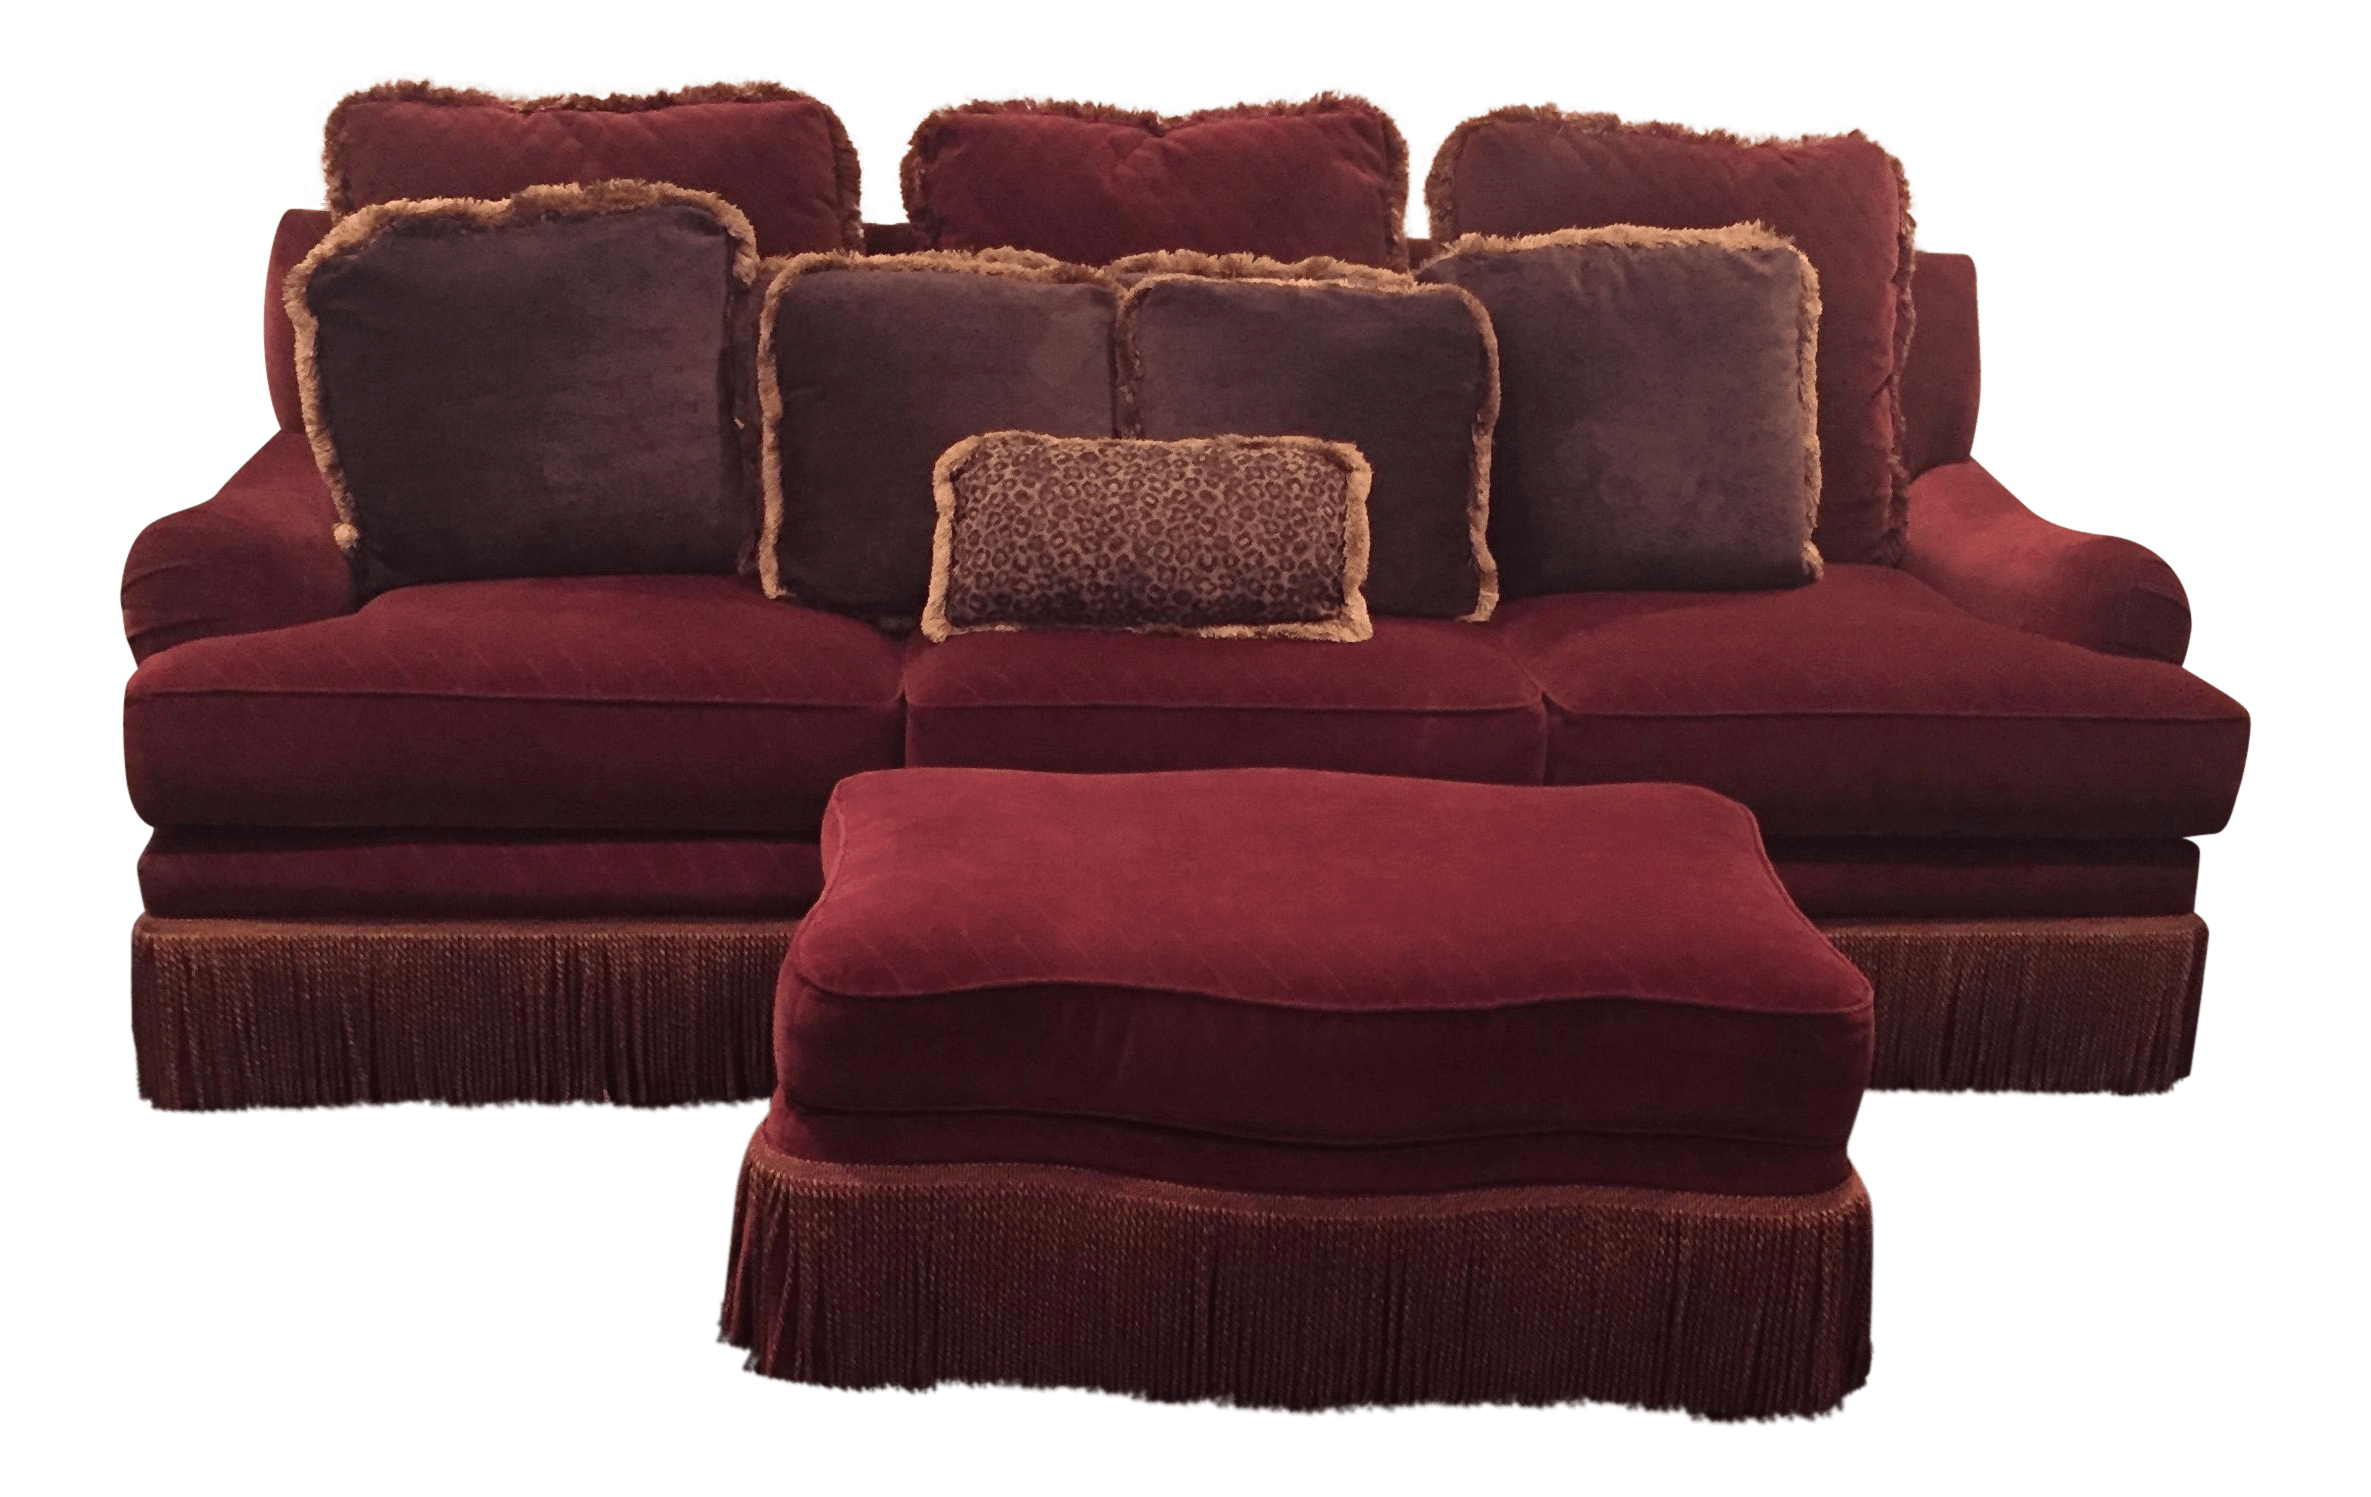 taylor king sofas how to fix small hole in leather sofa theatre chairish